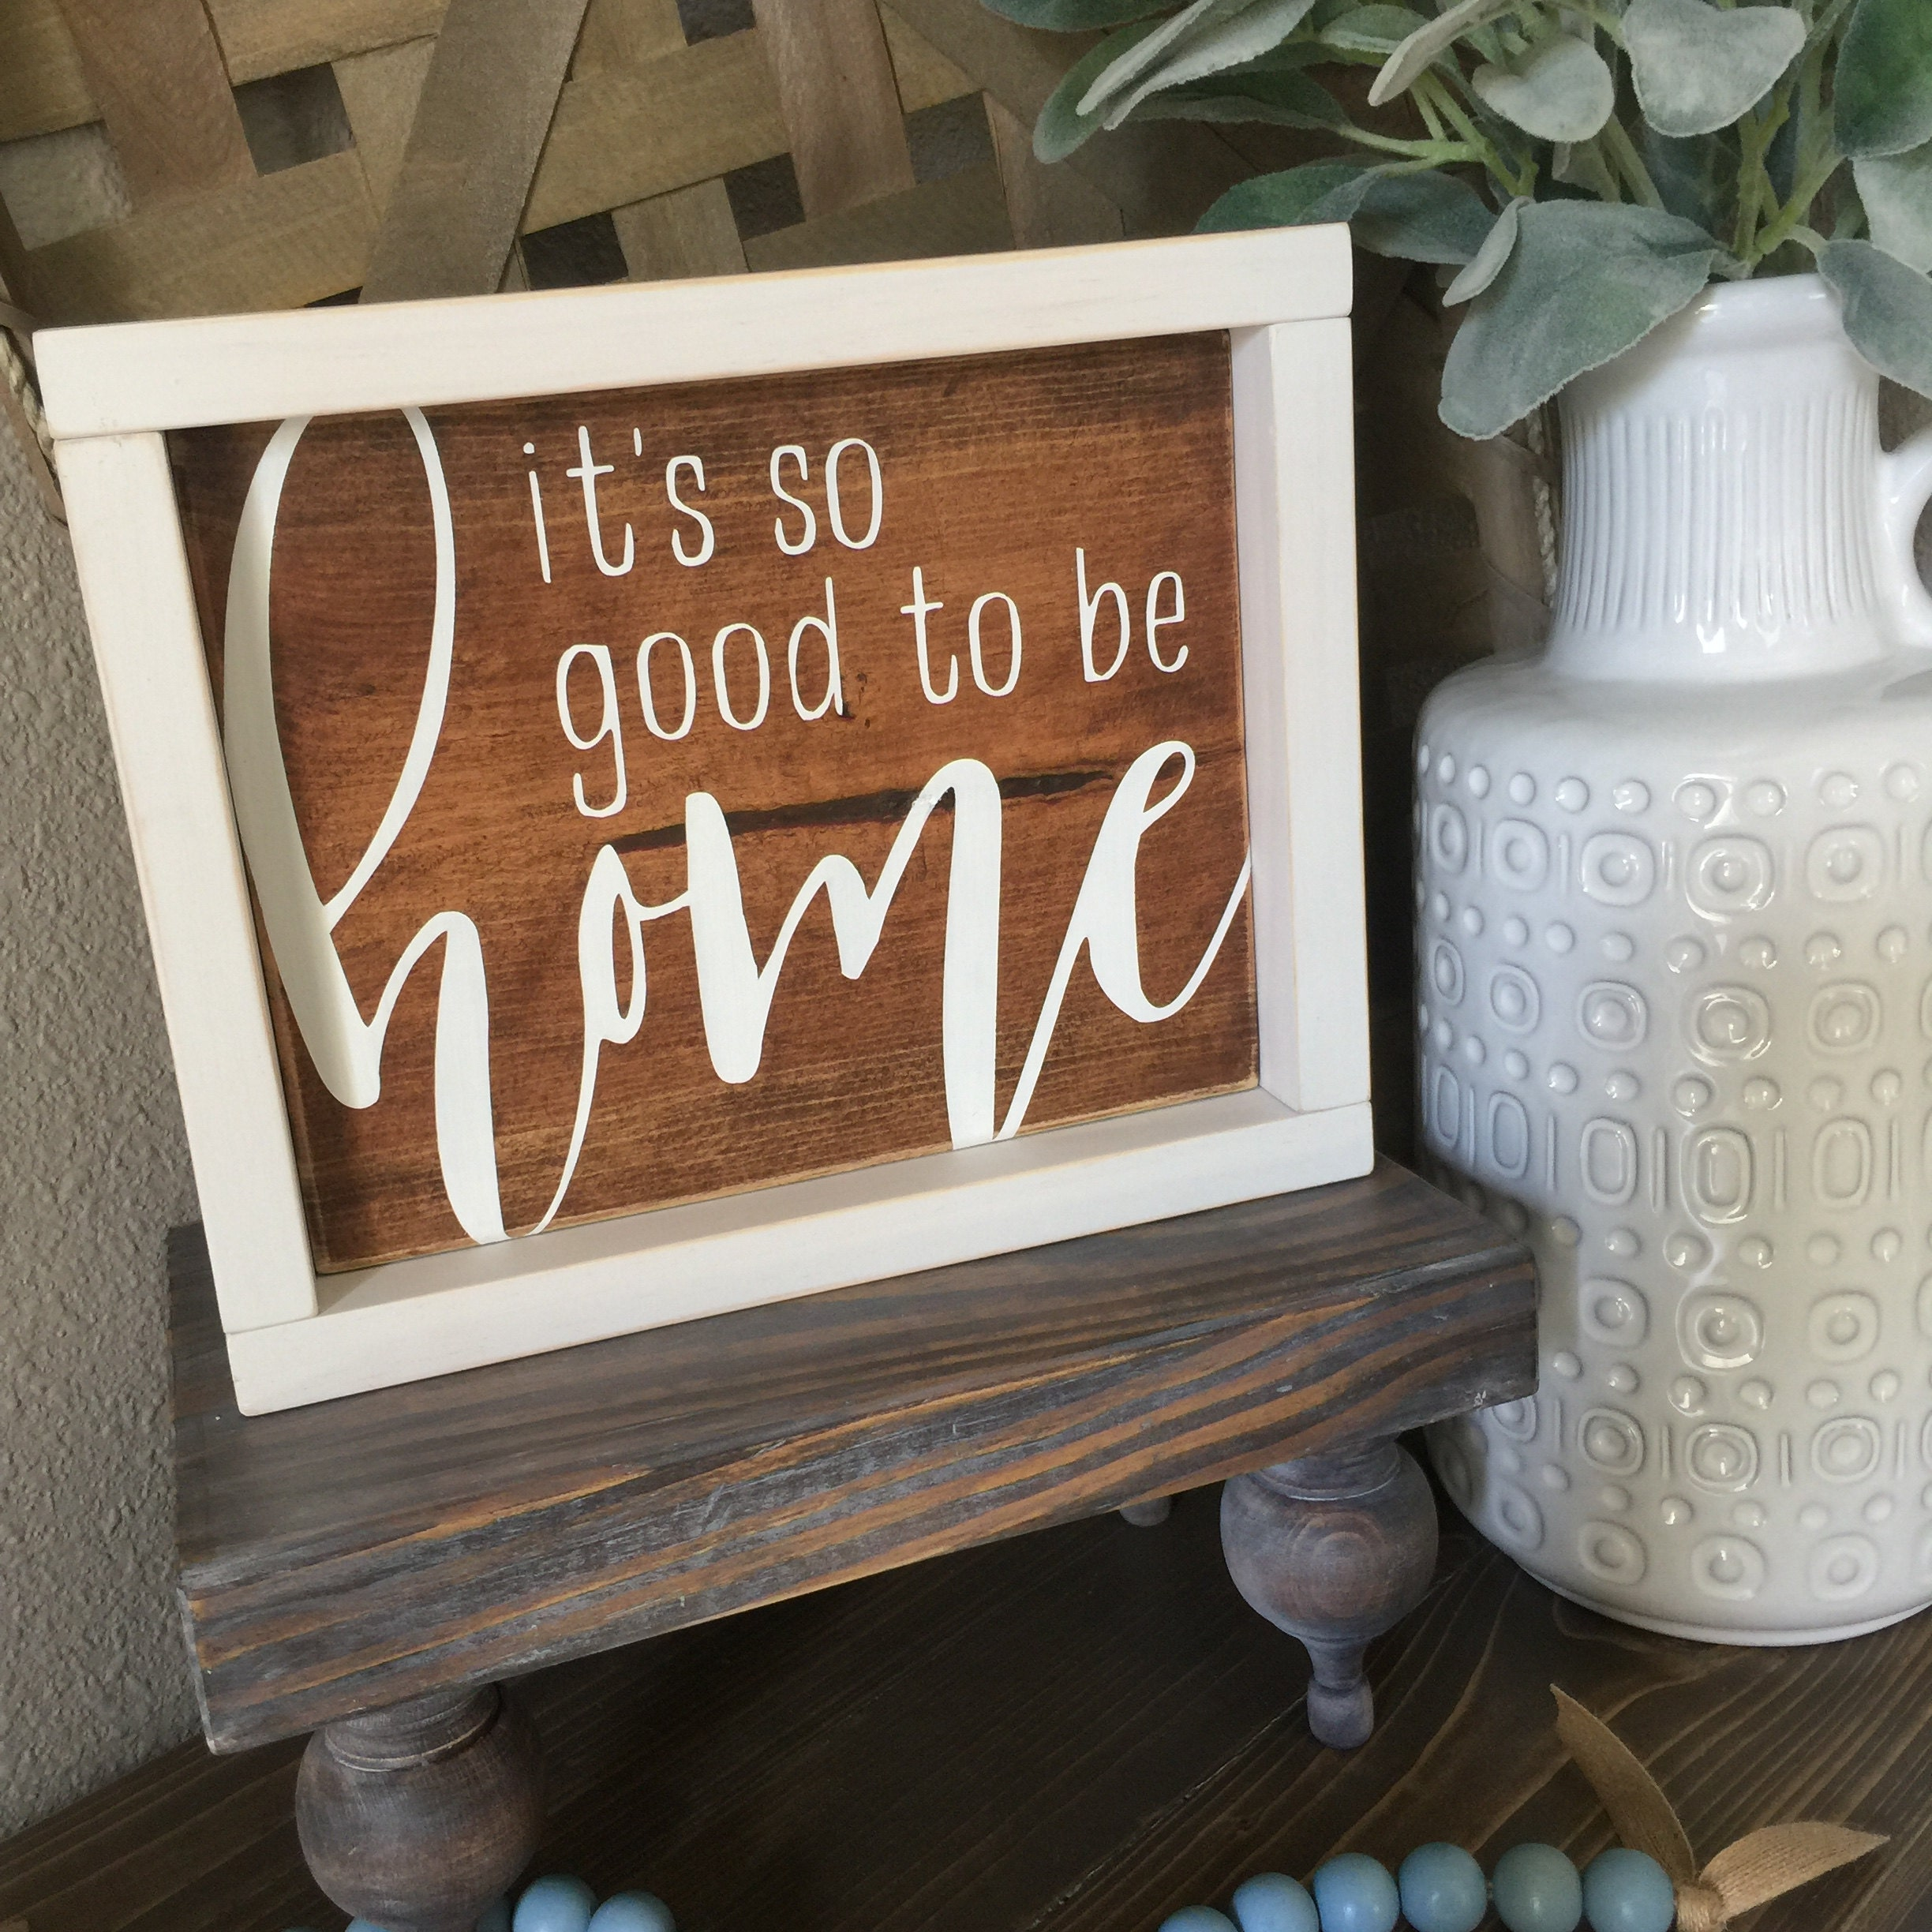 Custom Hand Painted Wood Signs And Home Decor. By